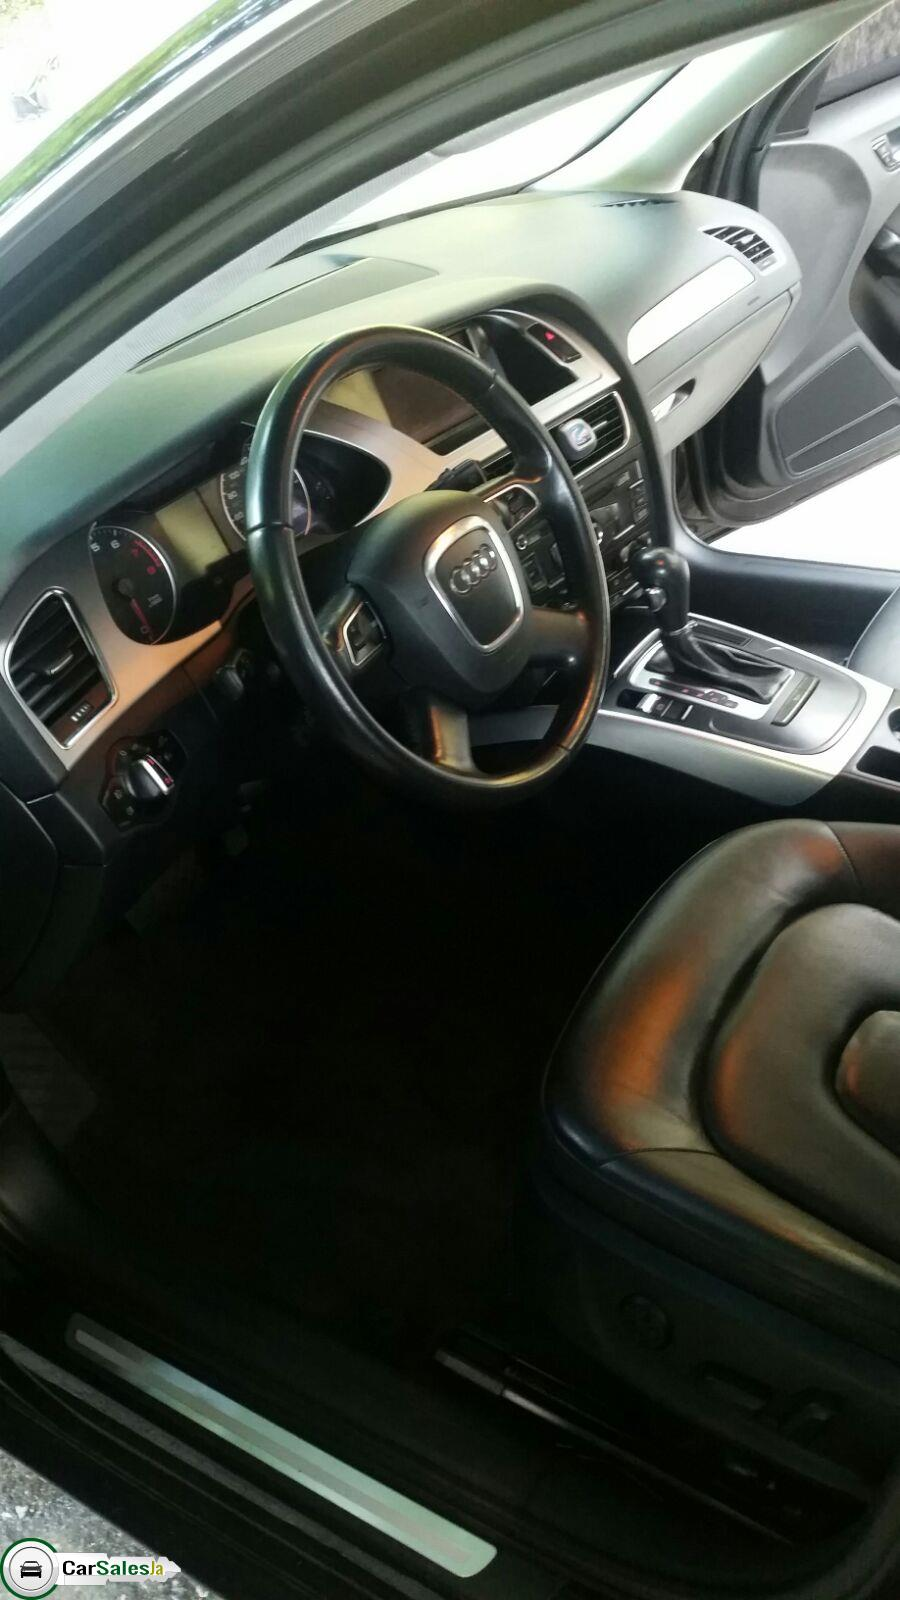 Cars for sale in Jamaica, Audi A4 Car for sale in Jamaica